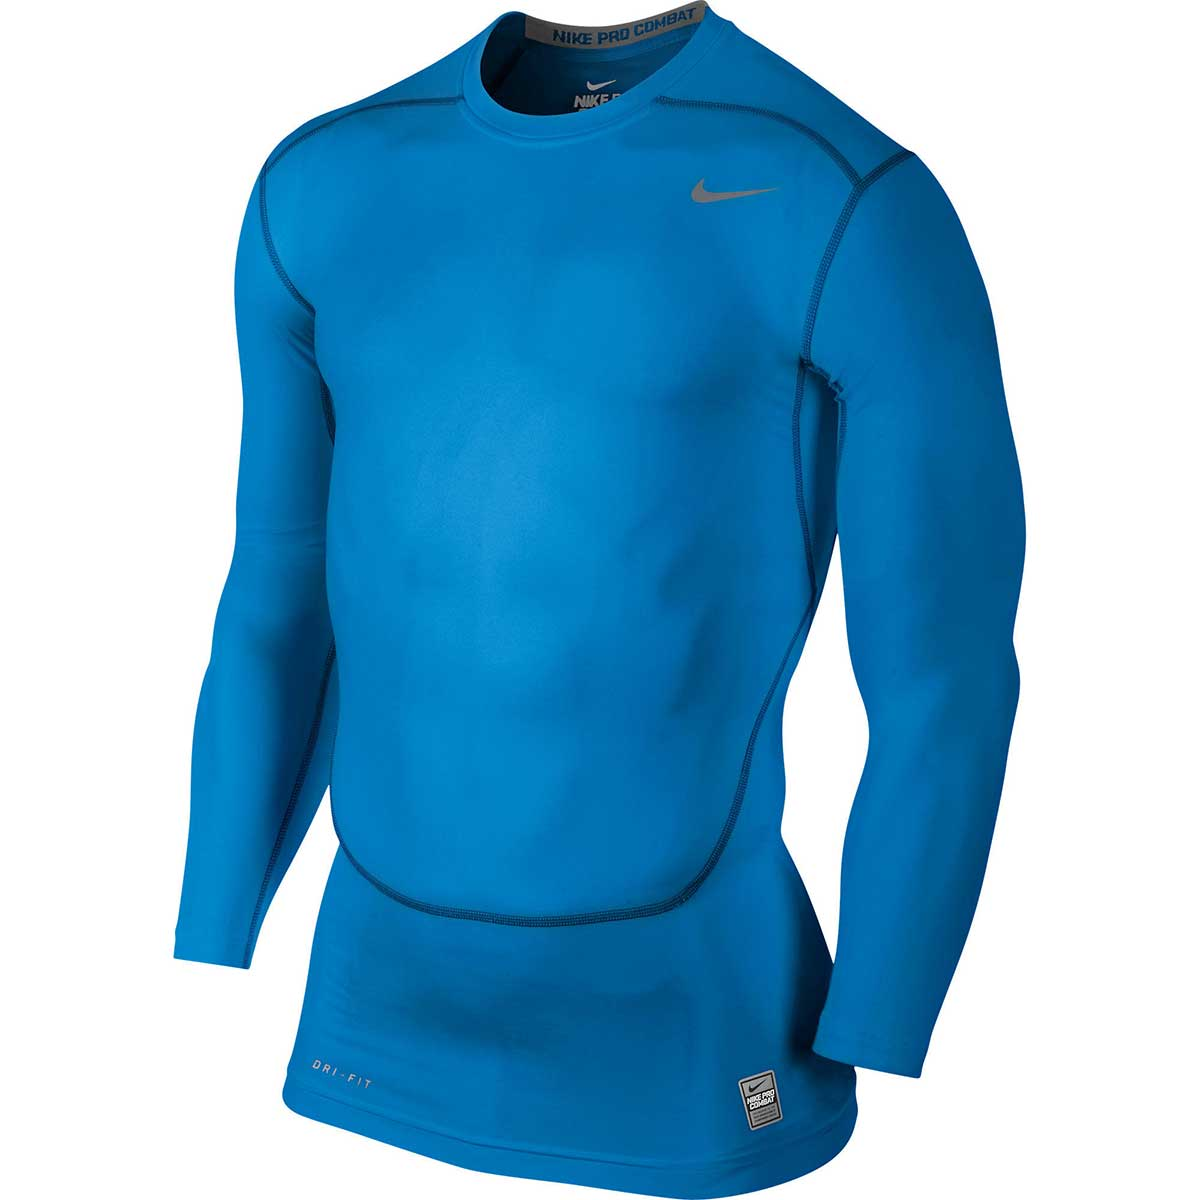 be2bd3f0 Buy Nike Pro Combat Long Sleeve Top Online India